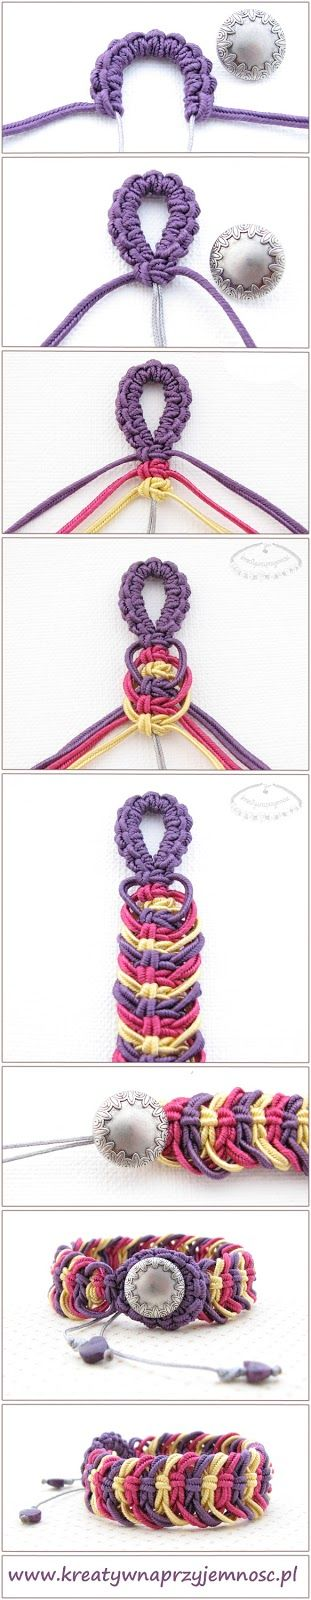 Craft yourself a soft, colorful bracelet with this great tutorial for casual style.